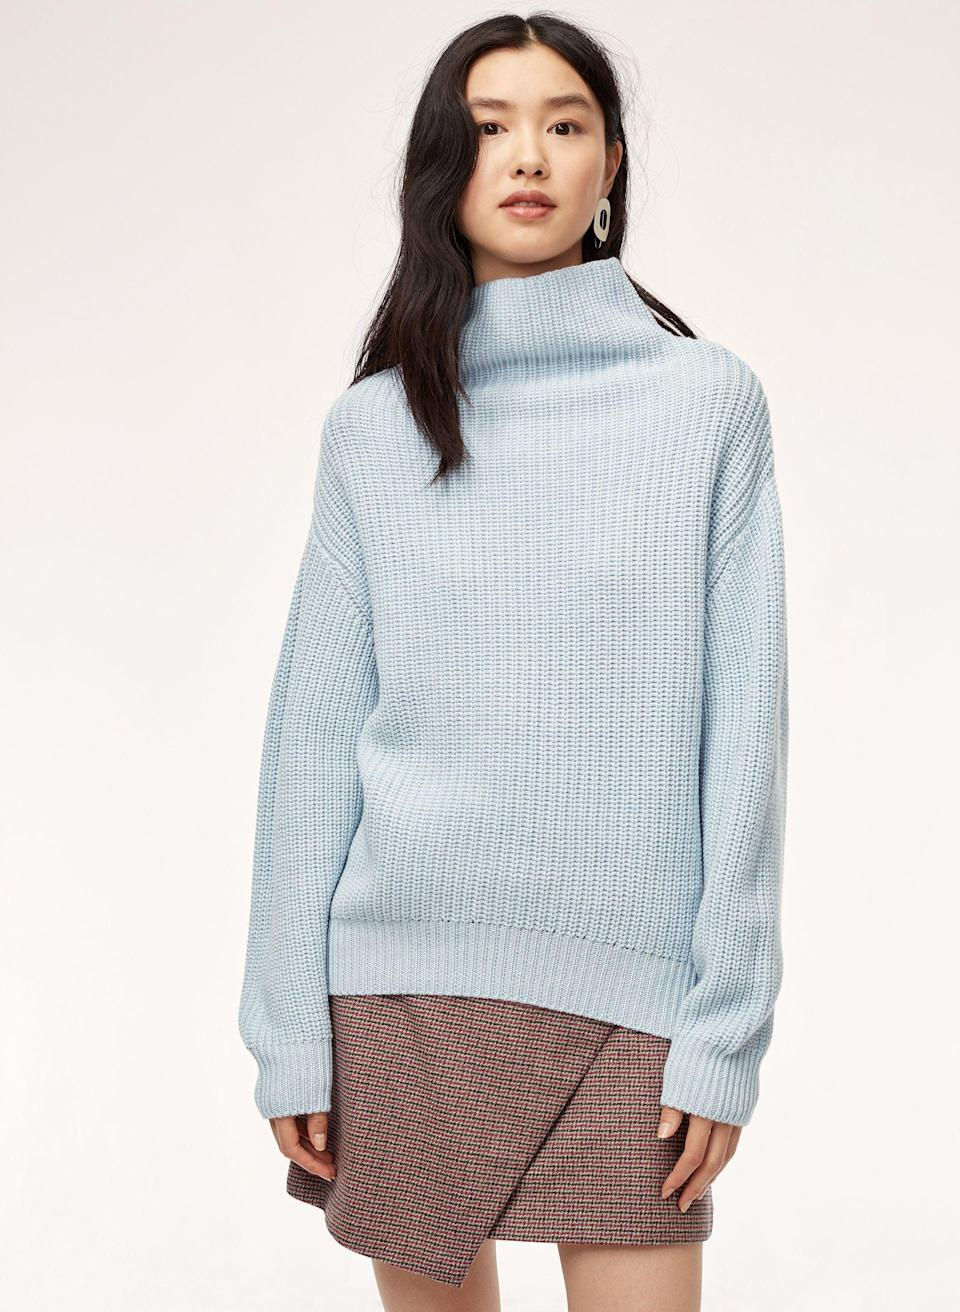 Start out with a sweater in a pretty blue shade.